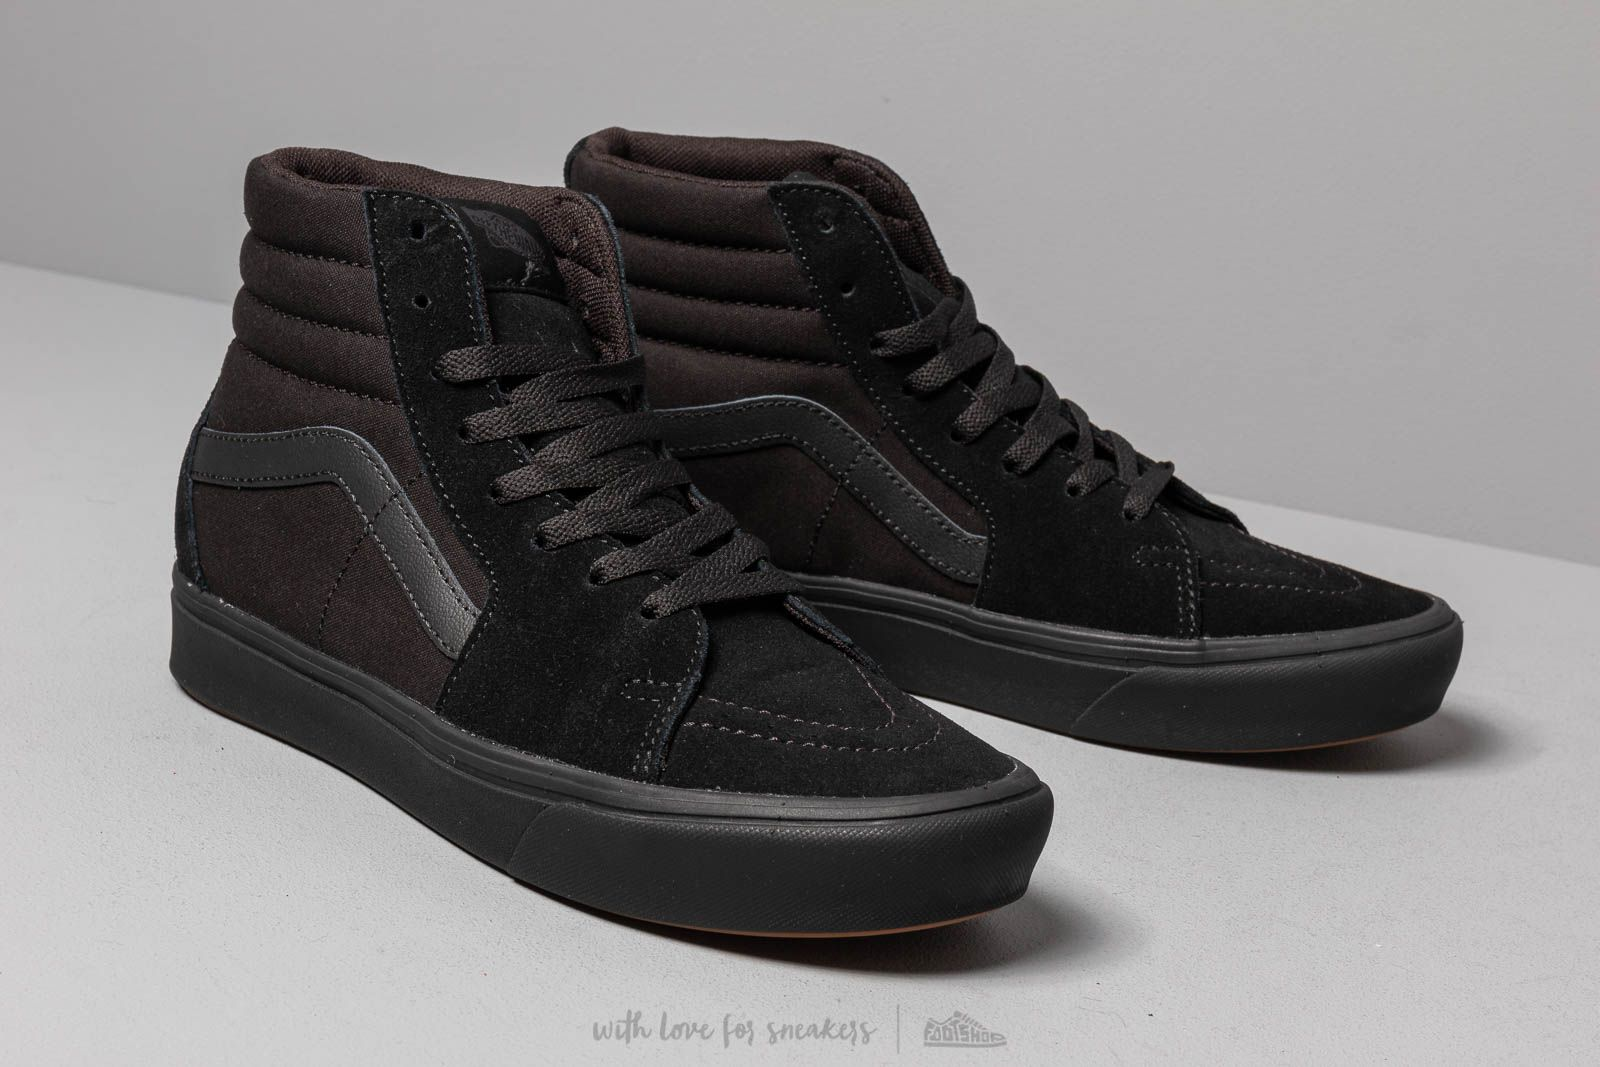 Vans ComfyCush Old Skool (Classic) BlackBlack Shoes